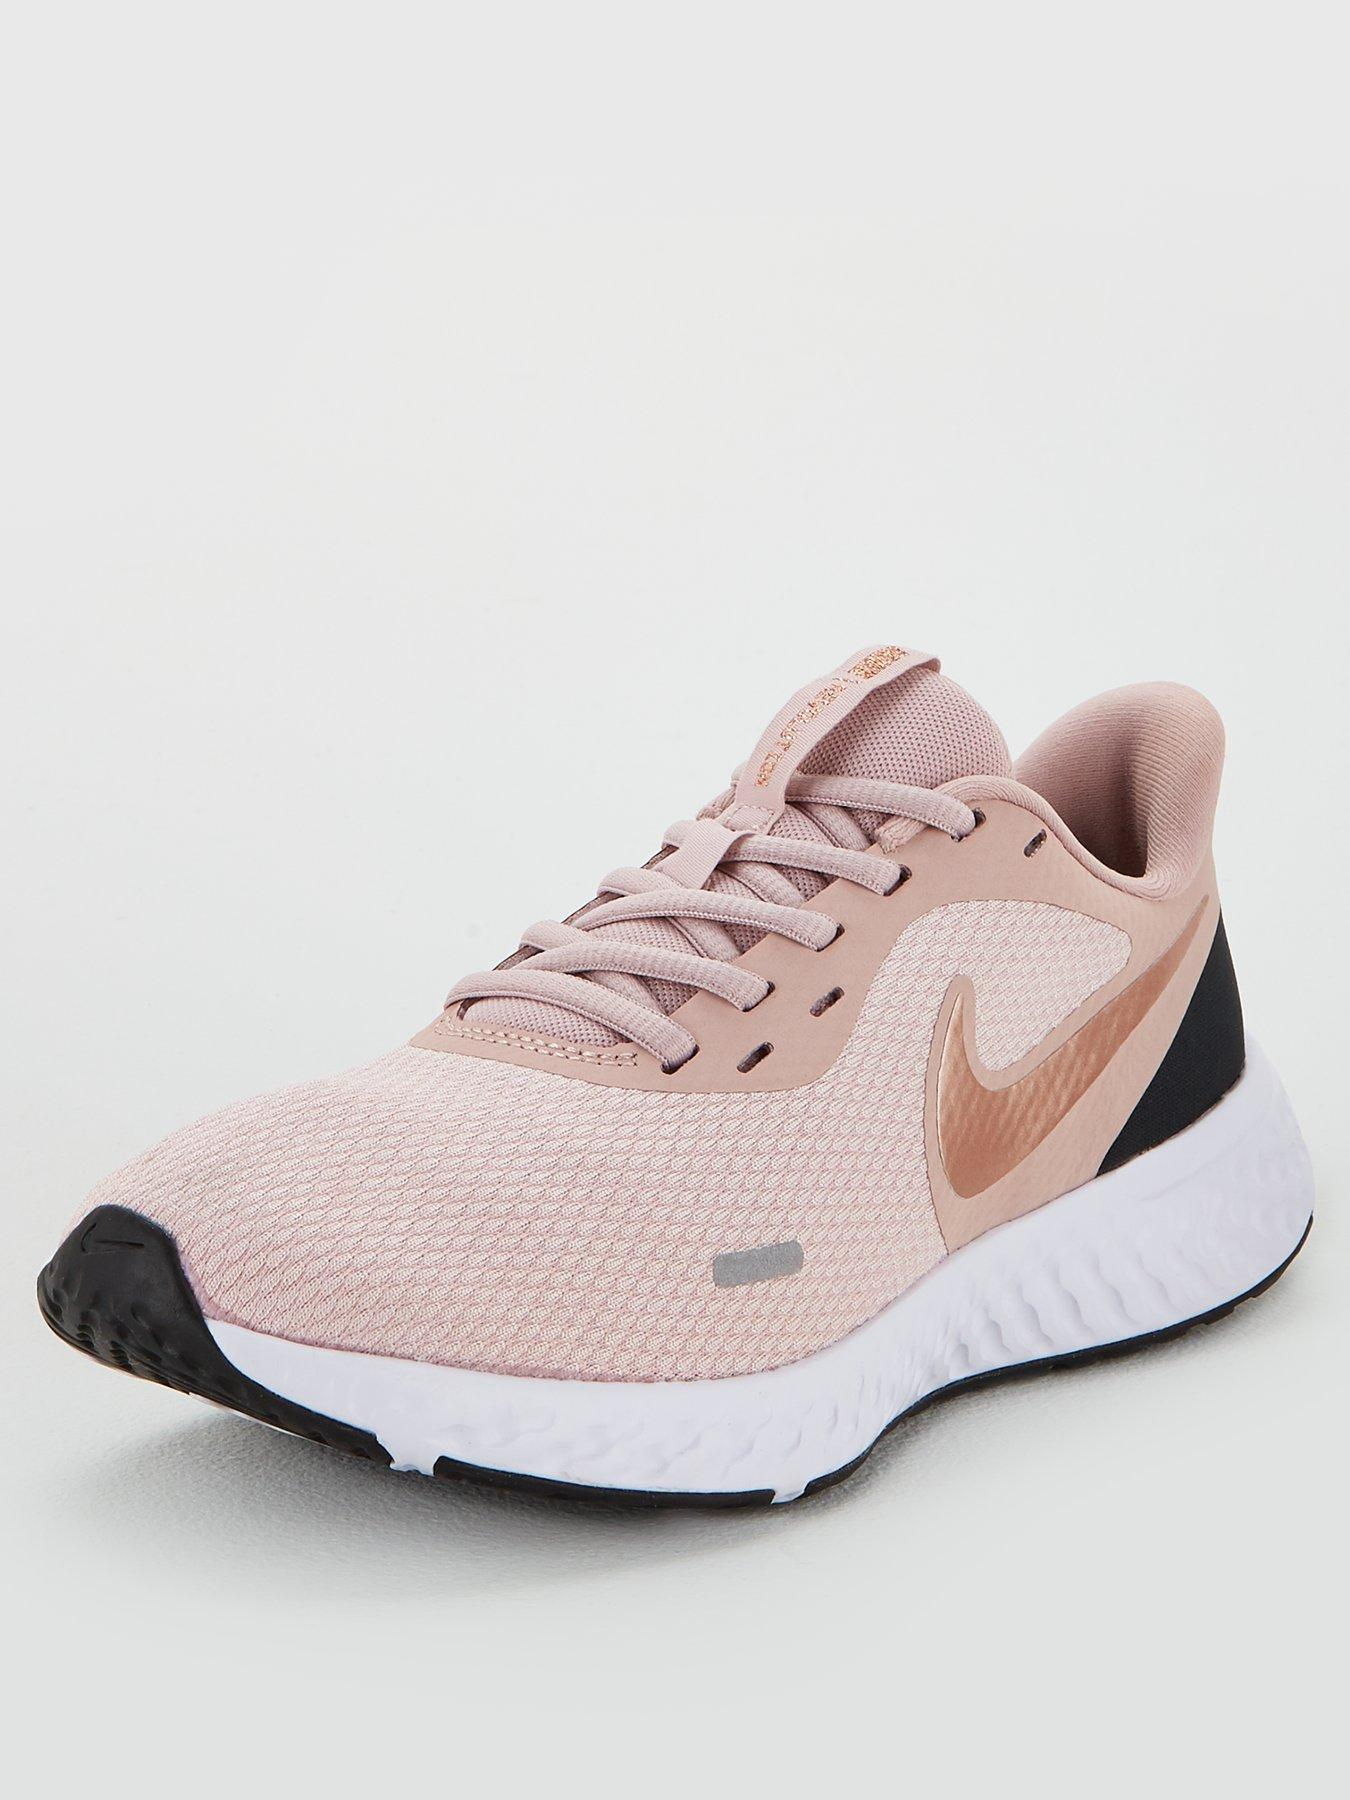 Women's Sports Trainers | Very.co.uk